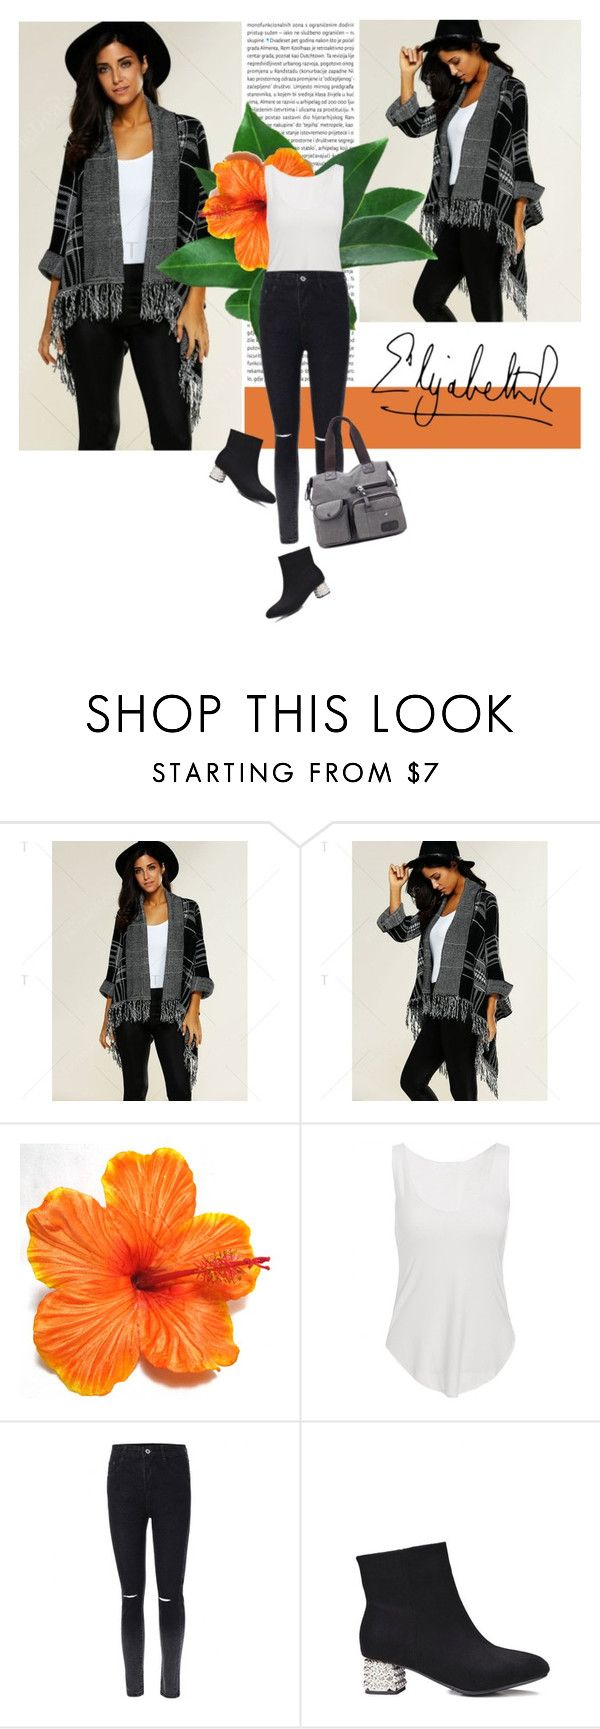 """Twinkledeals 14"" by becky12 ❤ liked on Polyvore featuring Oris, skinnyjeans, booties and twinkledeals"